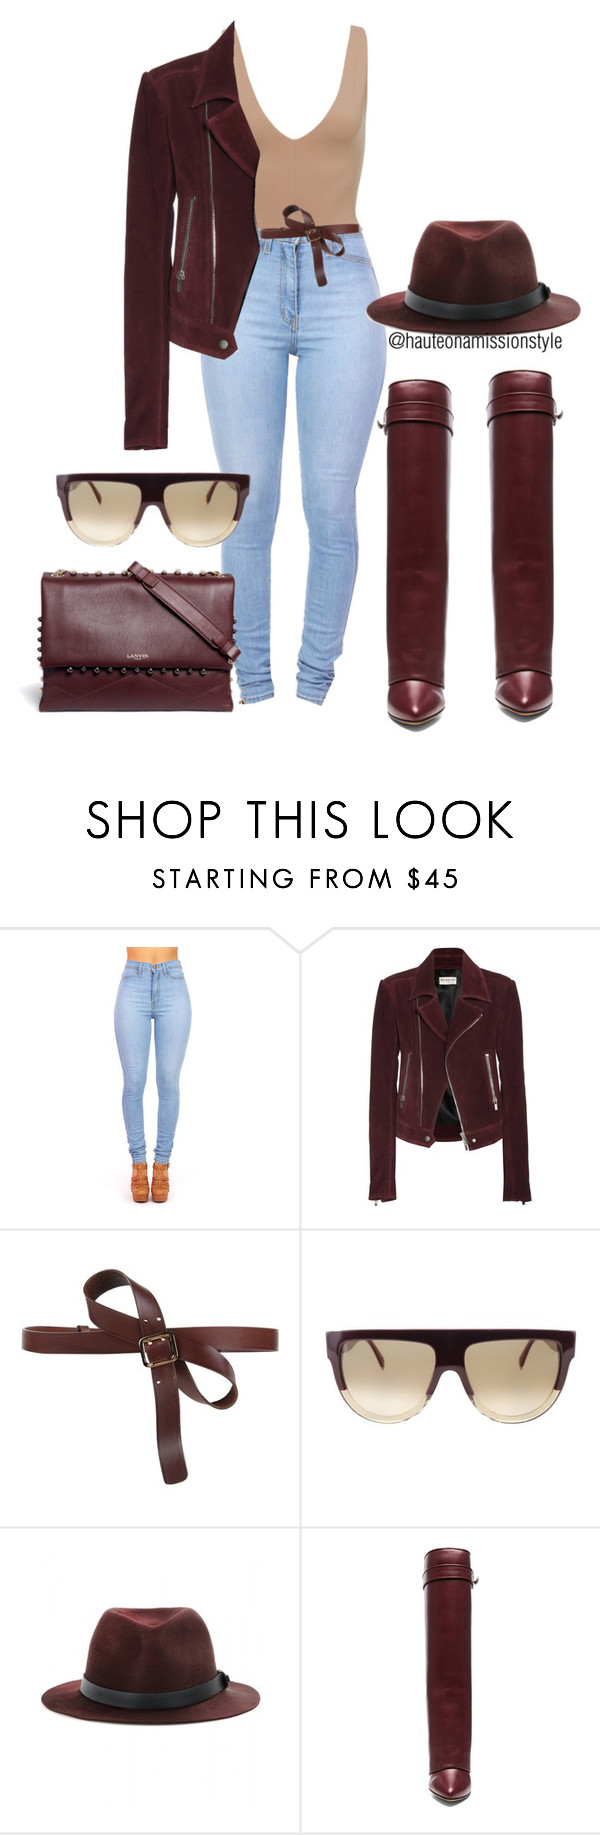 """""""Untitled #218"""" by hauteonamission ❤ liked on Polyvore featuring Balenciaga, Dsquared2, CÉLINE, rag & bone, Givenchy, Lanvin, chic and hauteonamissionstyle"""